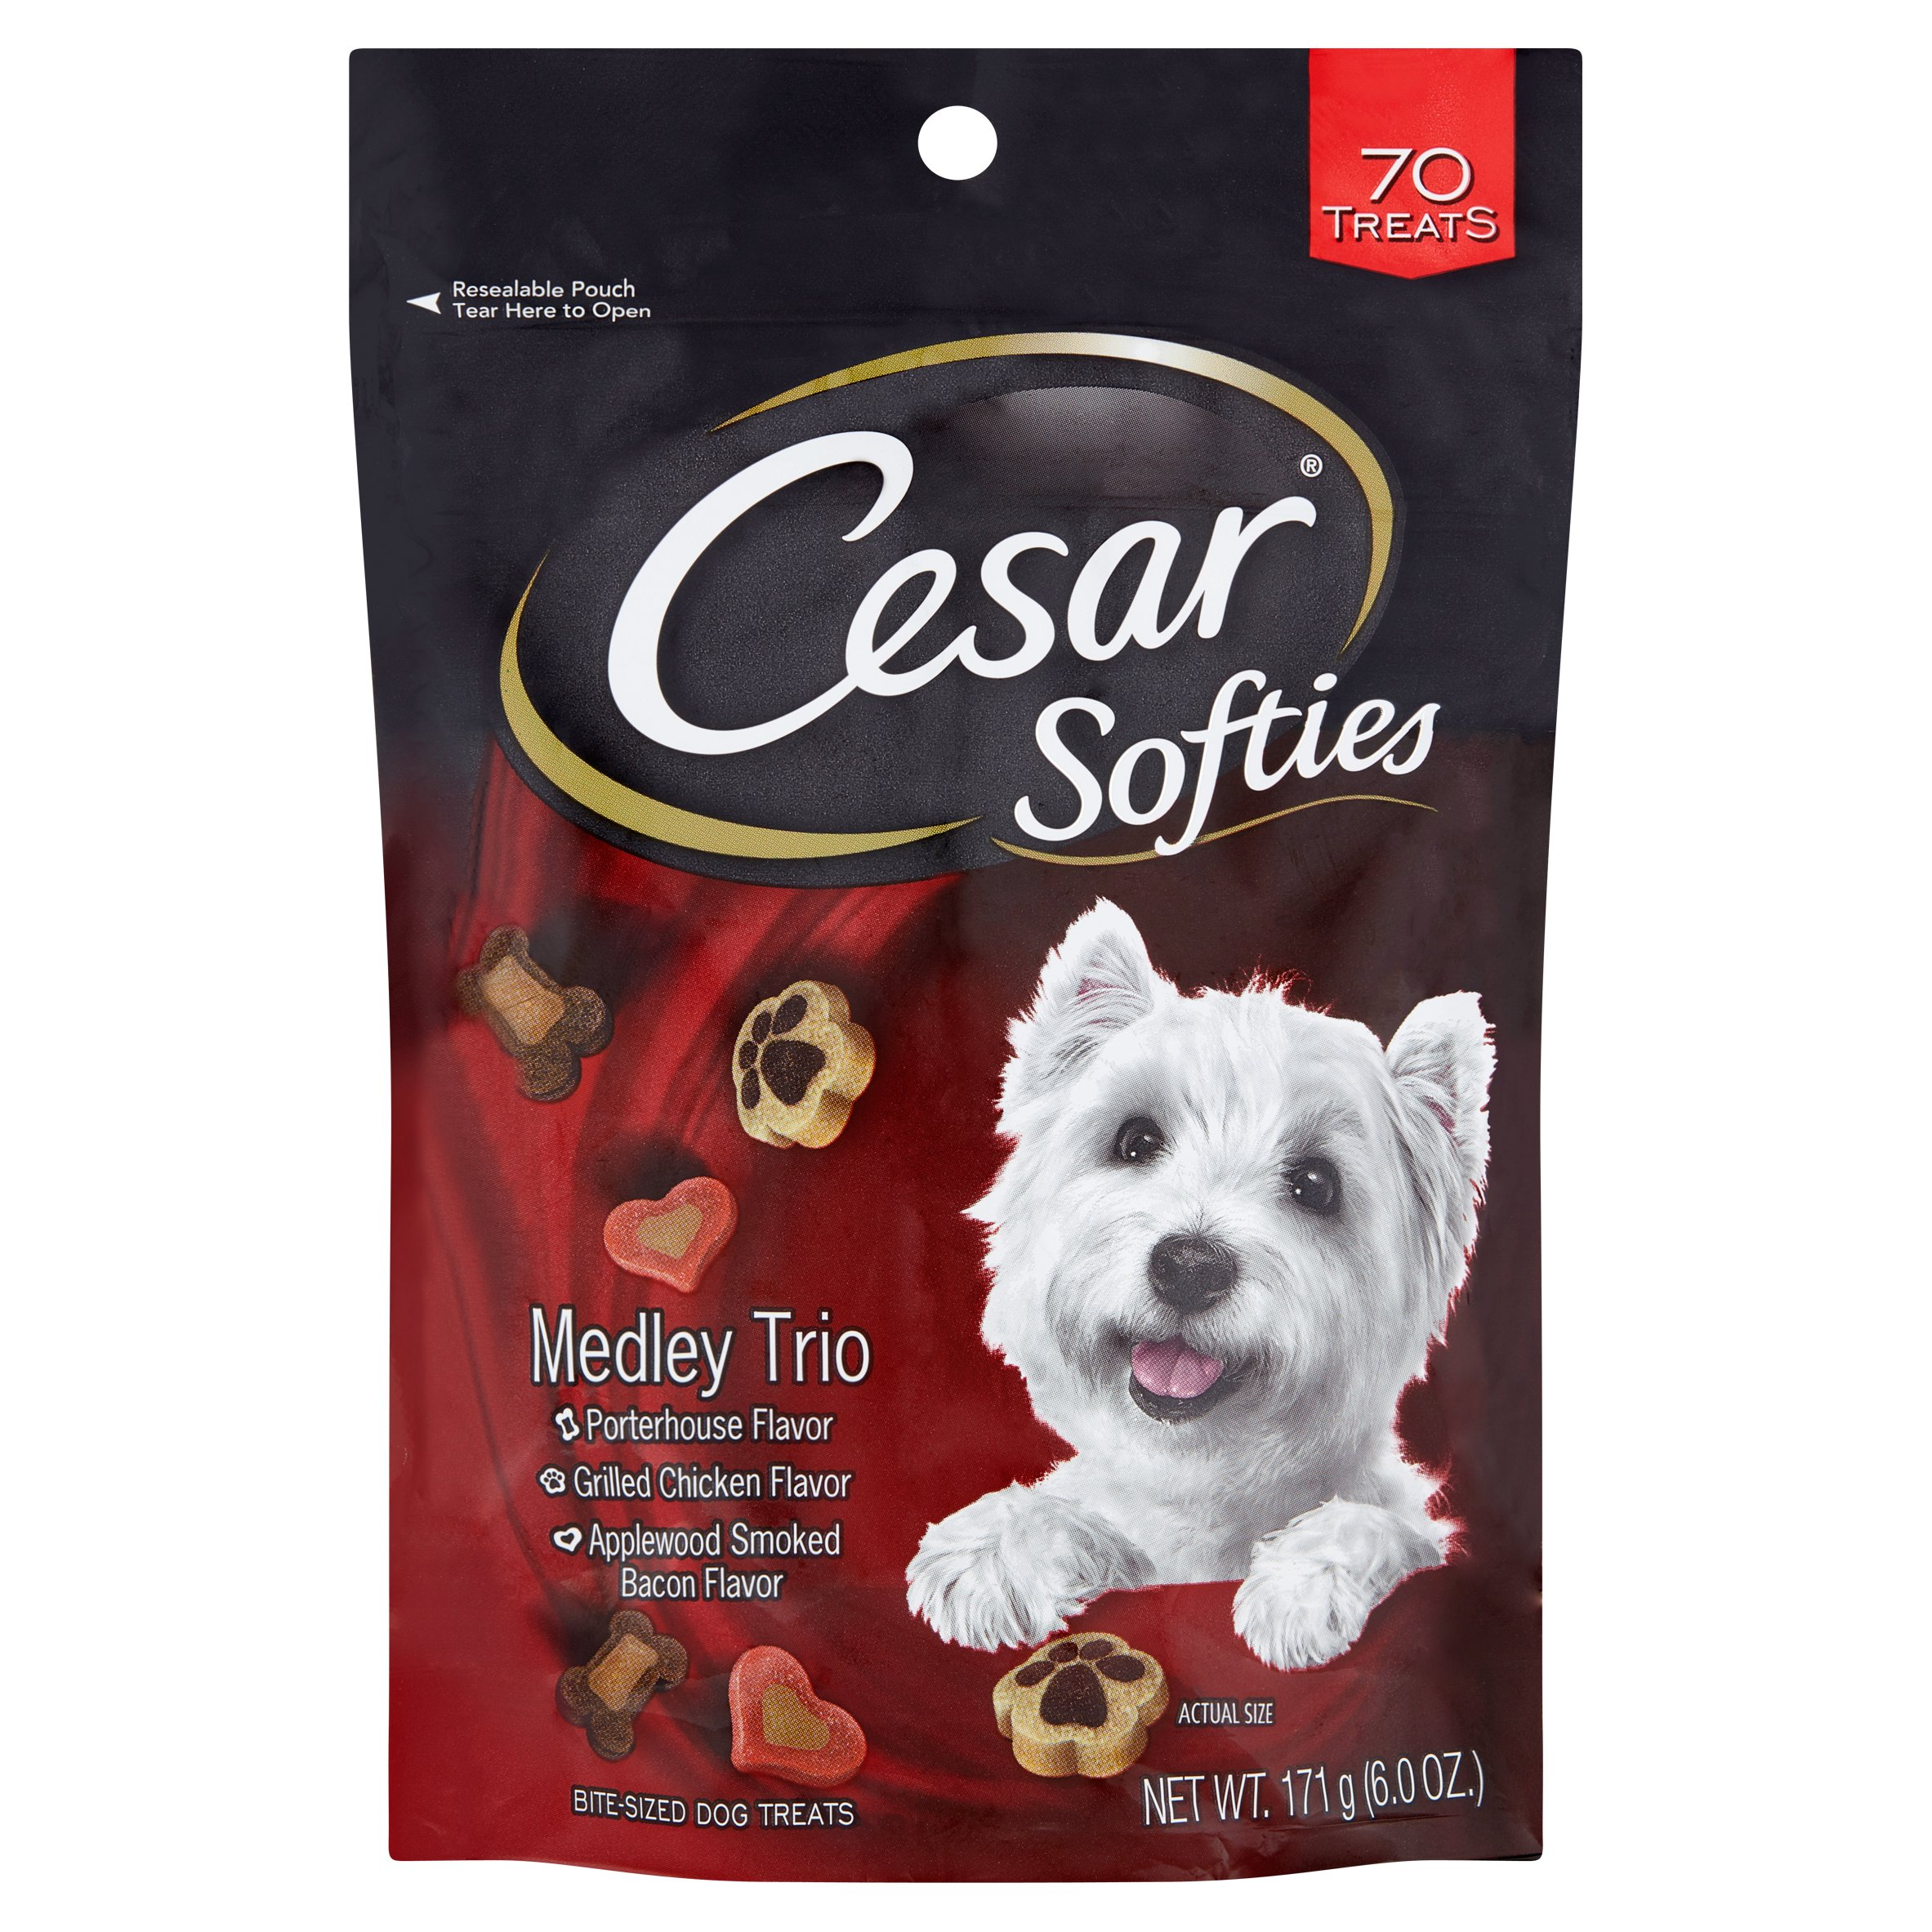 Cesar Softies Medley Trio Bite-Sized Dog Treats, 70 Count, 6.0 Oz by Mars Petcare Us